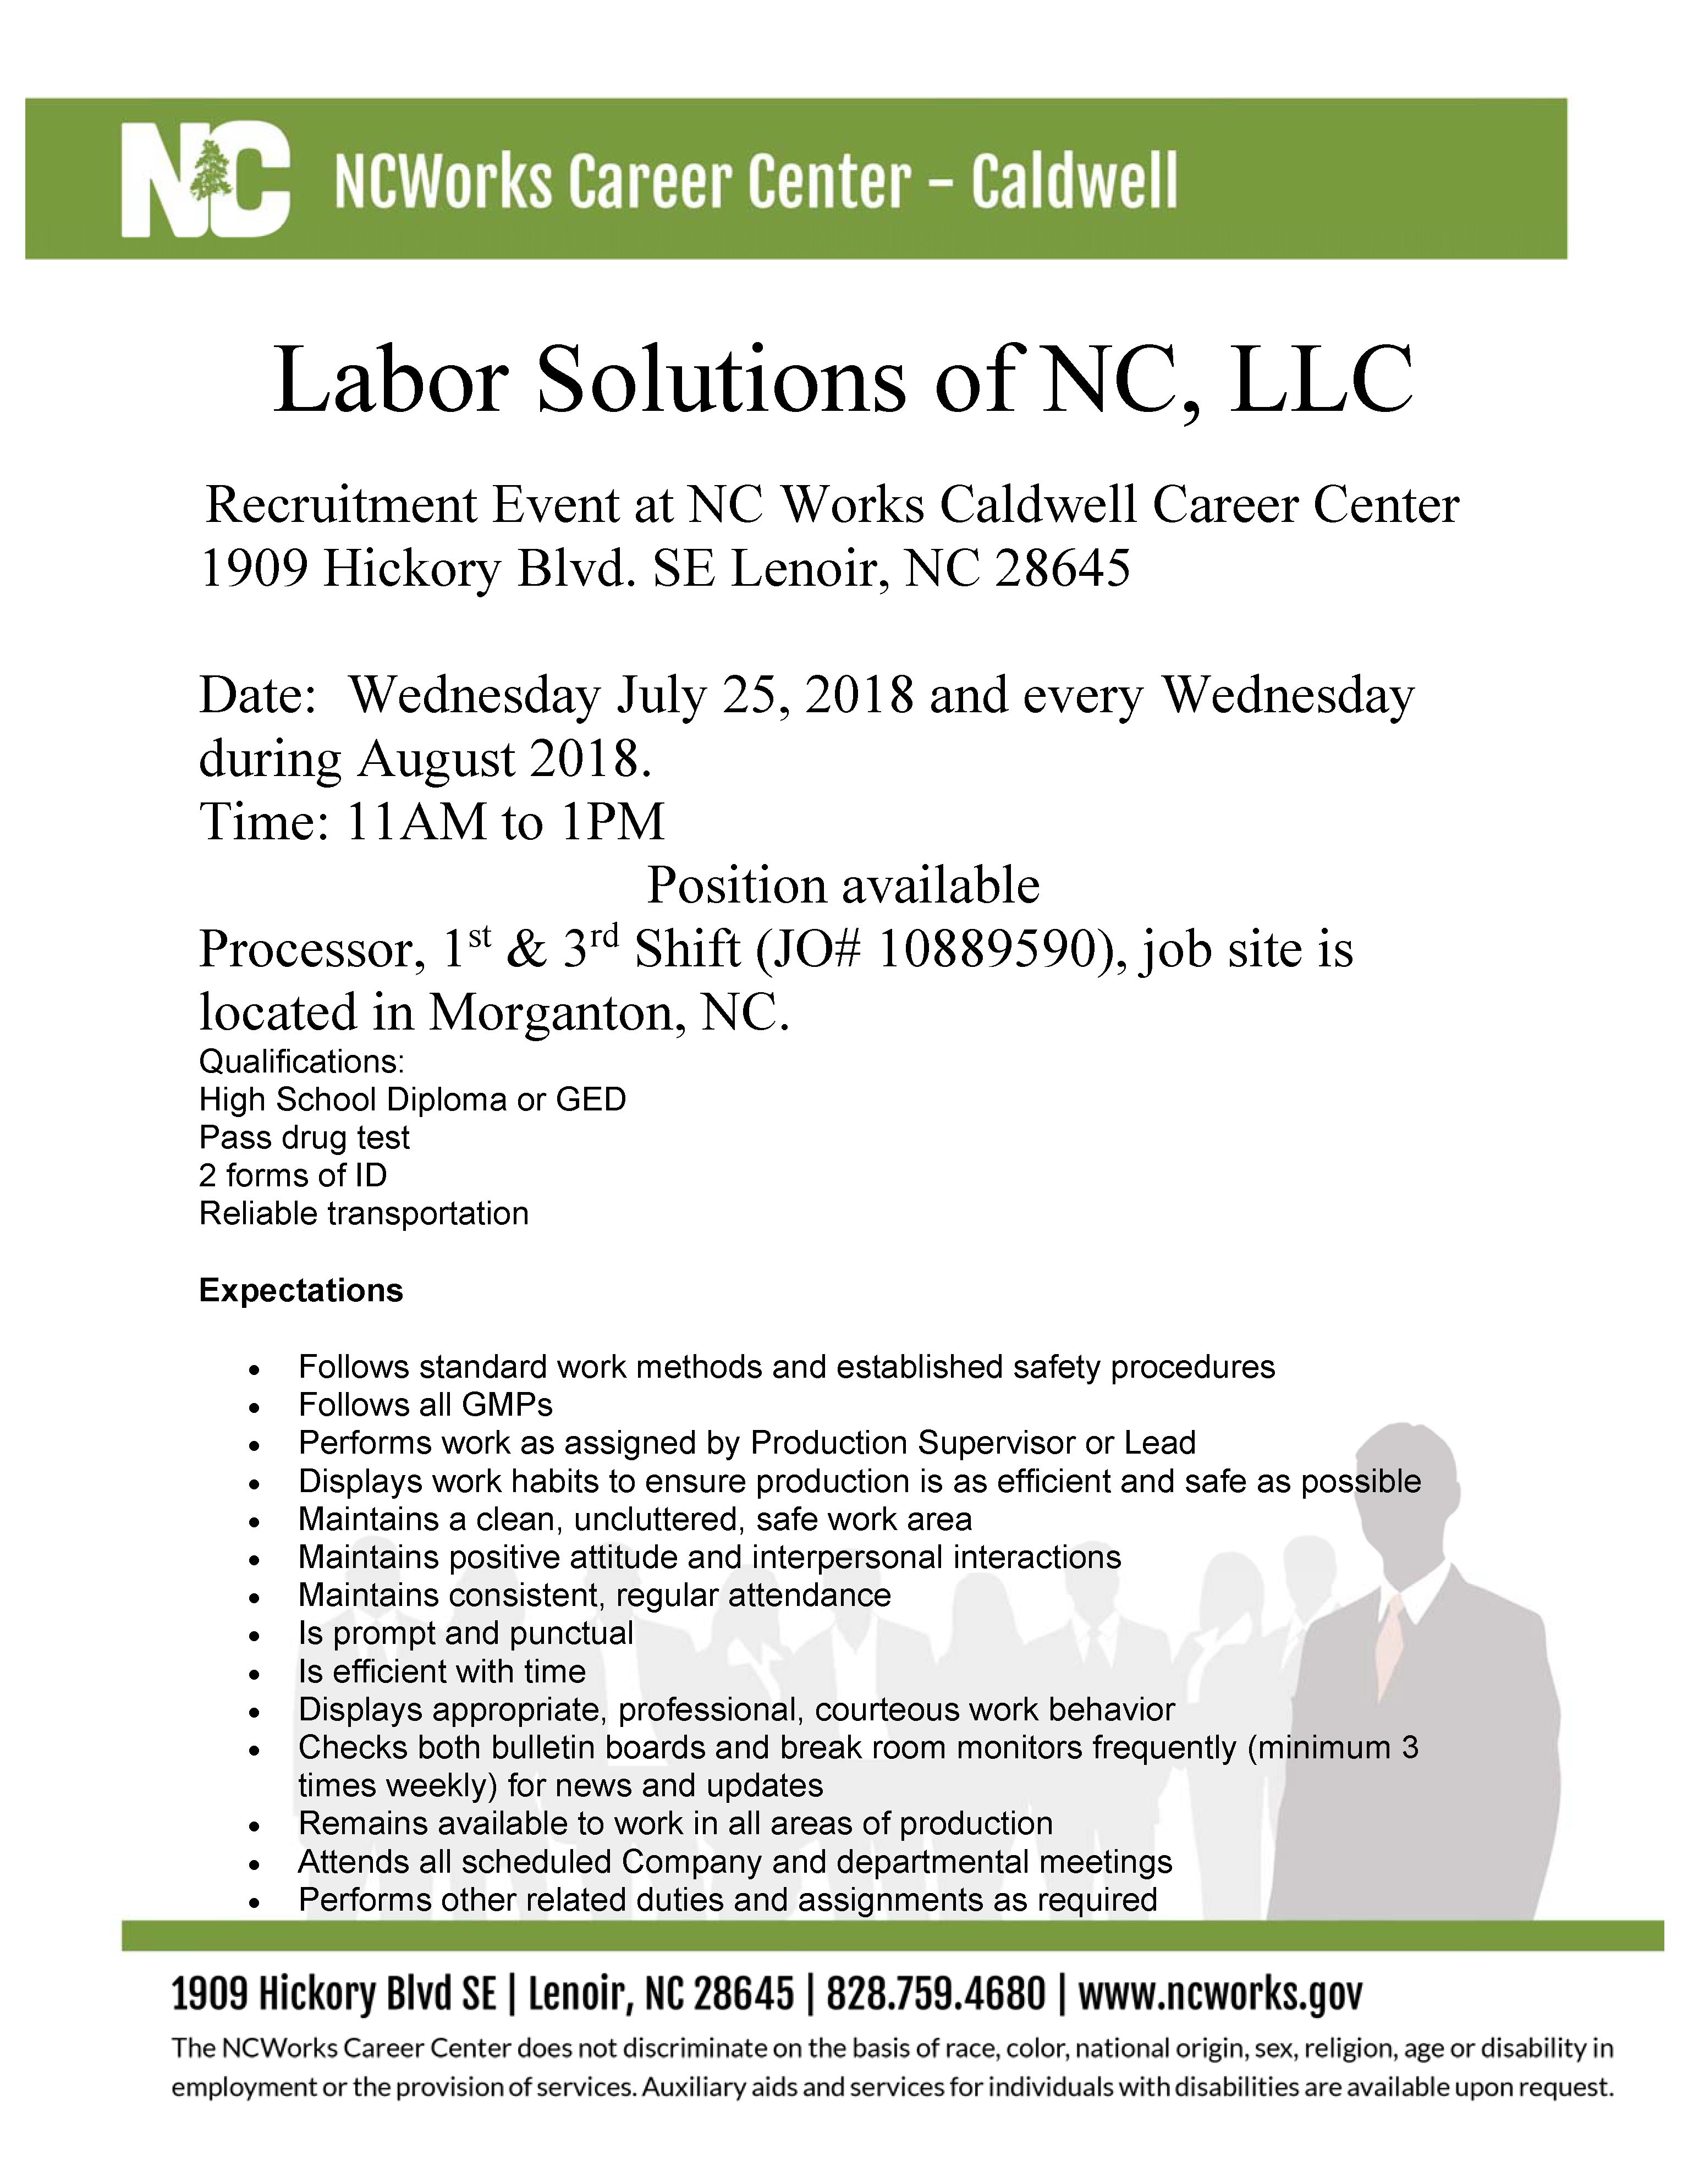 Llc In Nc >> Labor Solutions Of Nc Llc Recruitment Event At Nc Works Caldwell